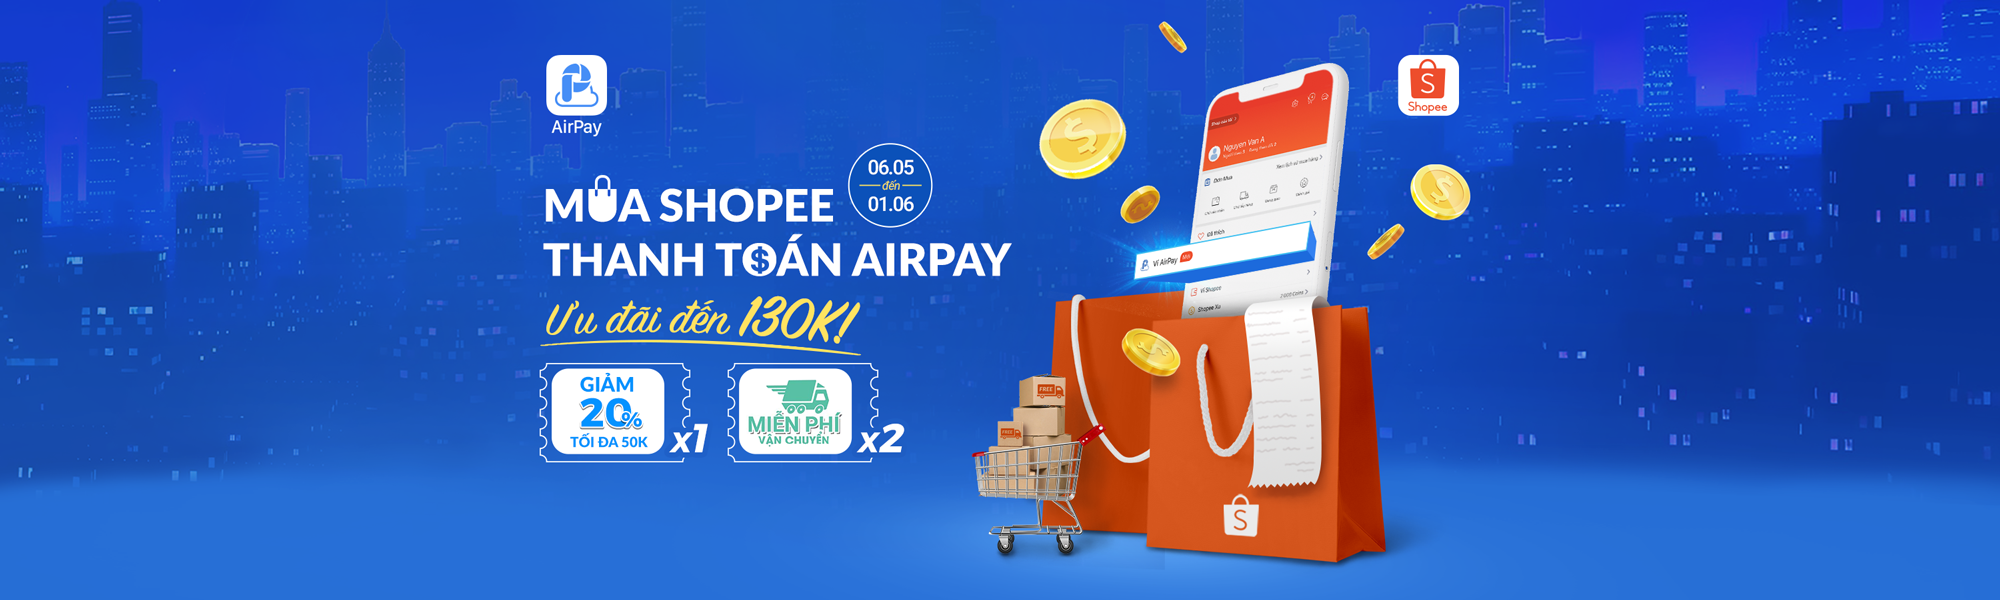 shopee-130k-promotion-may-2019